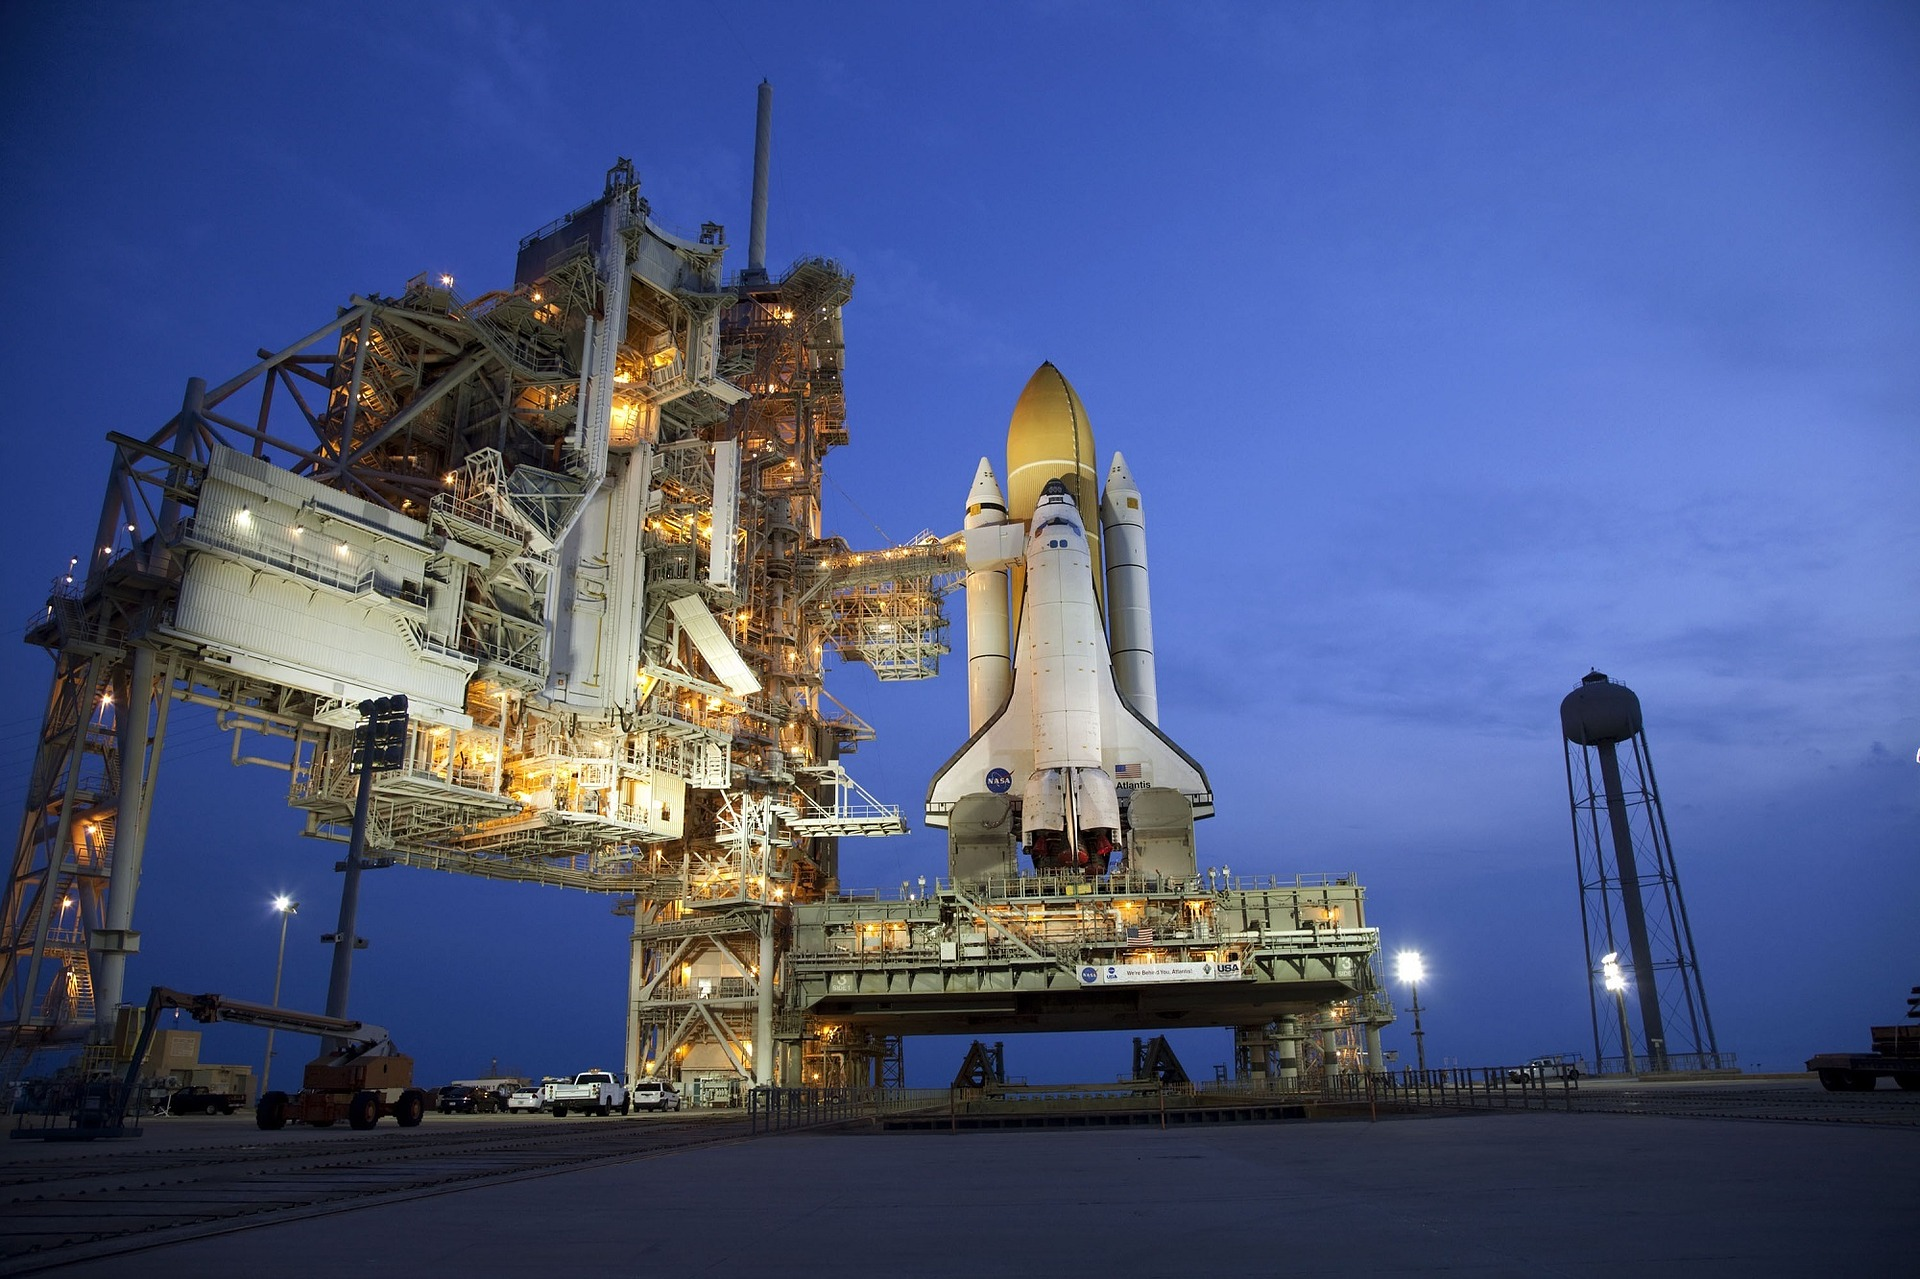 atlantis-space-shuttle-879404_1920.jpg